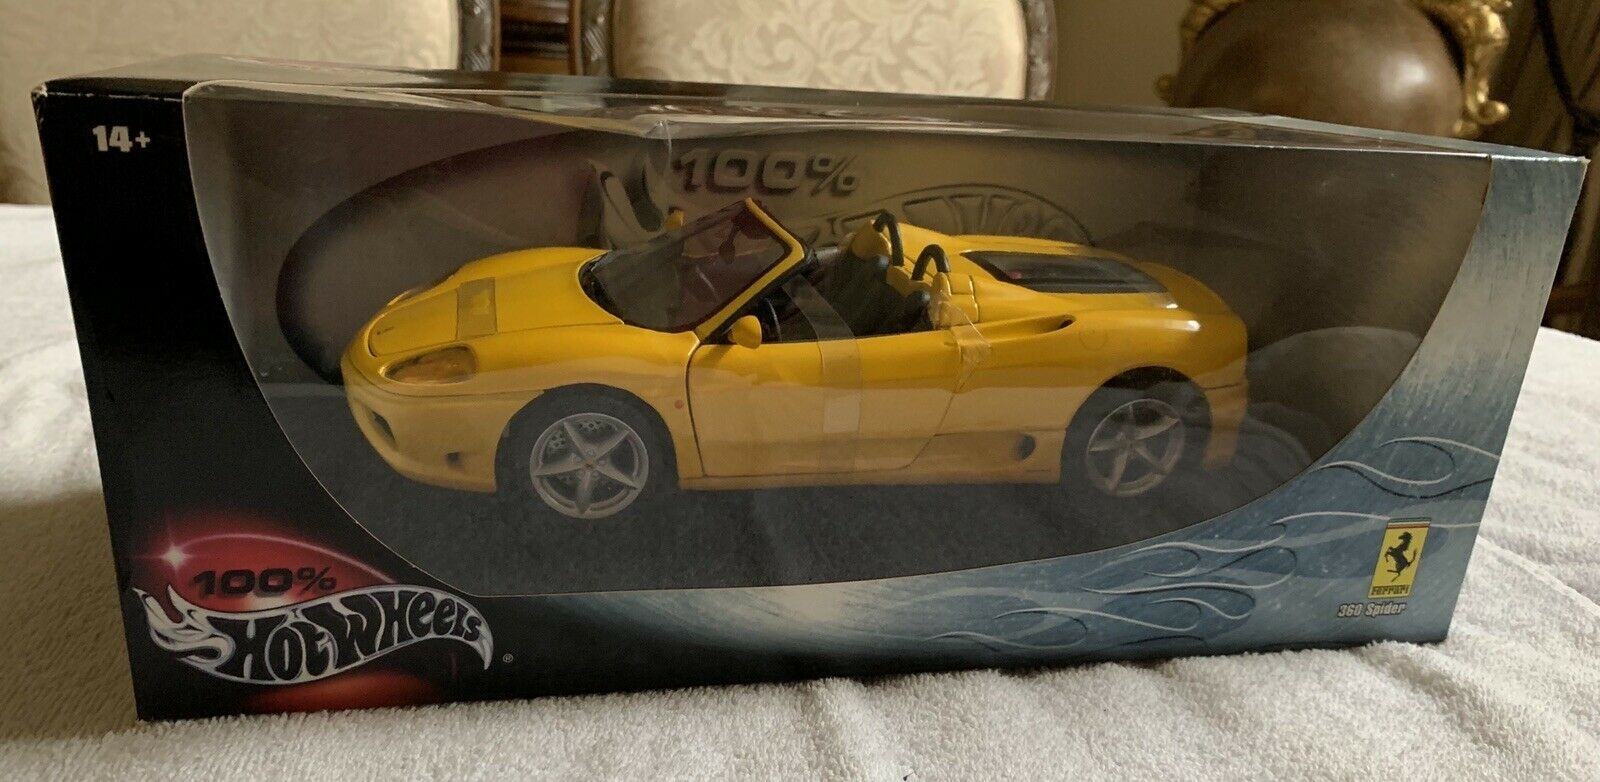 Ferrari 360 Spider Yellow 1 18 Scale Hot Wheels New For Sale Online